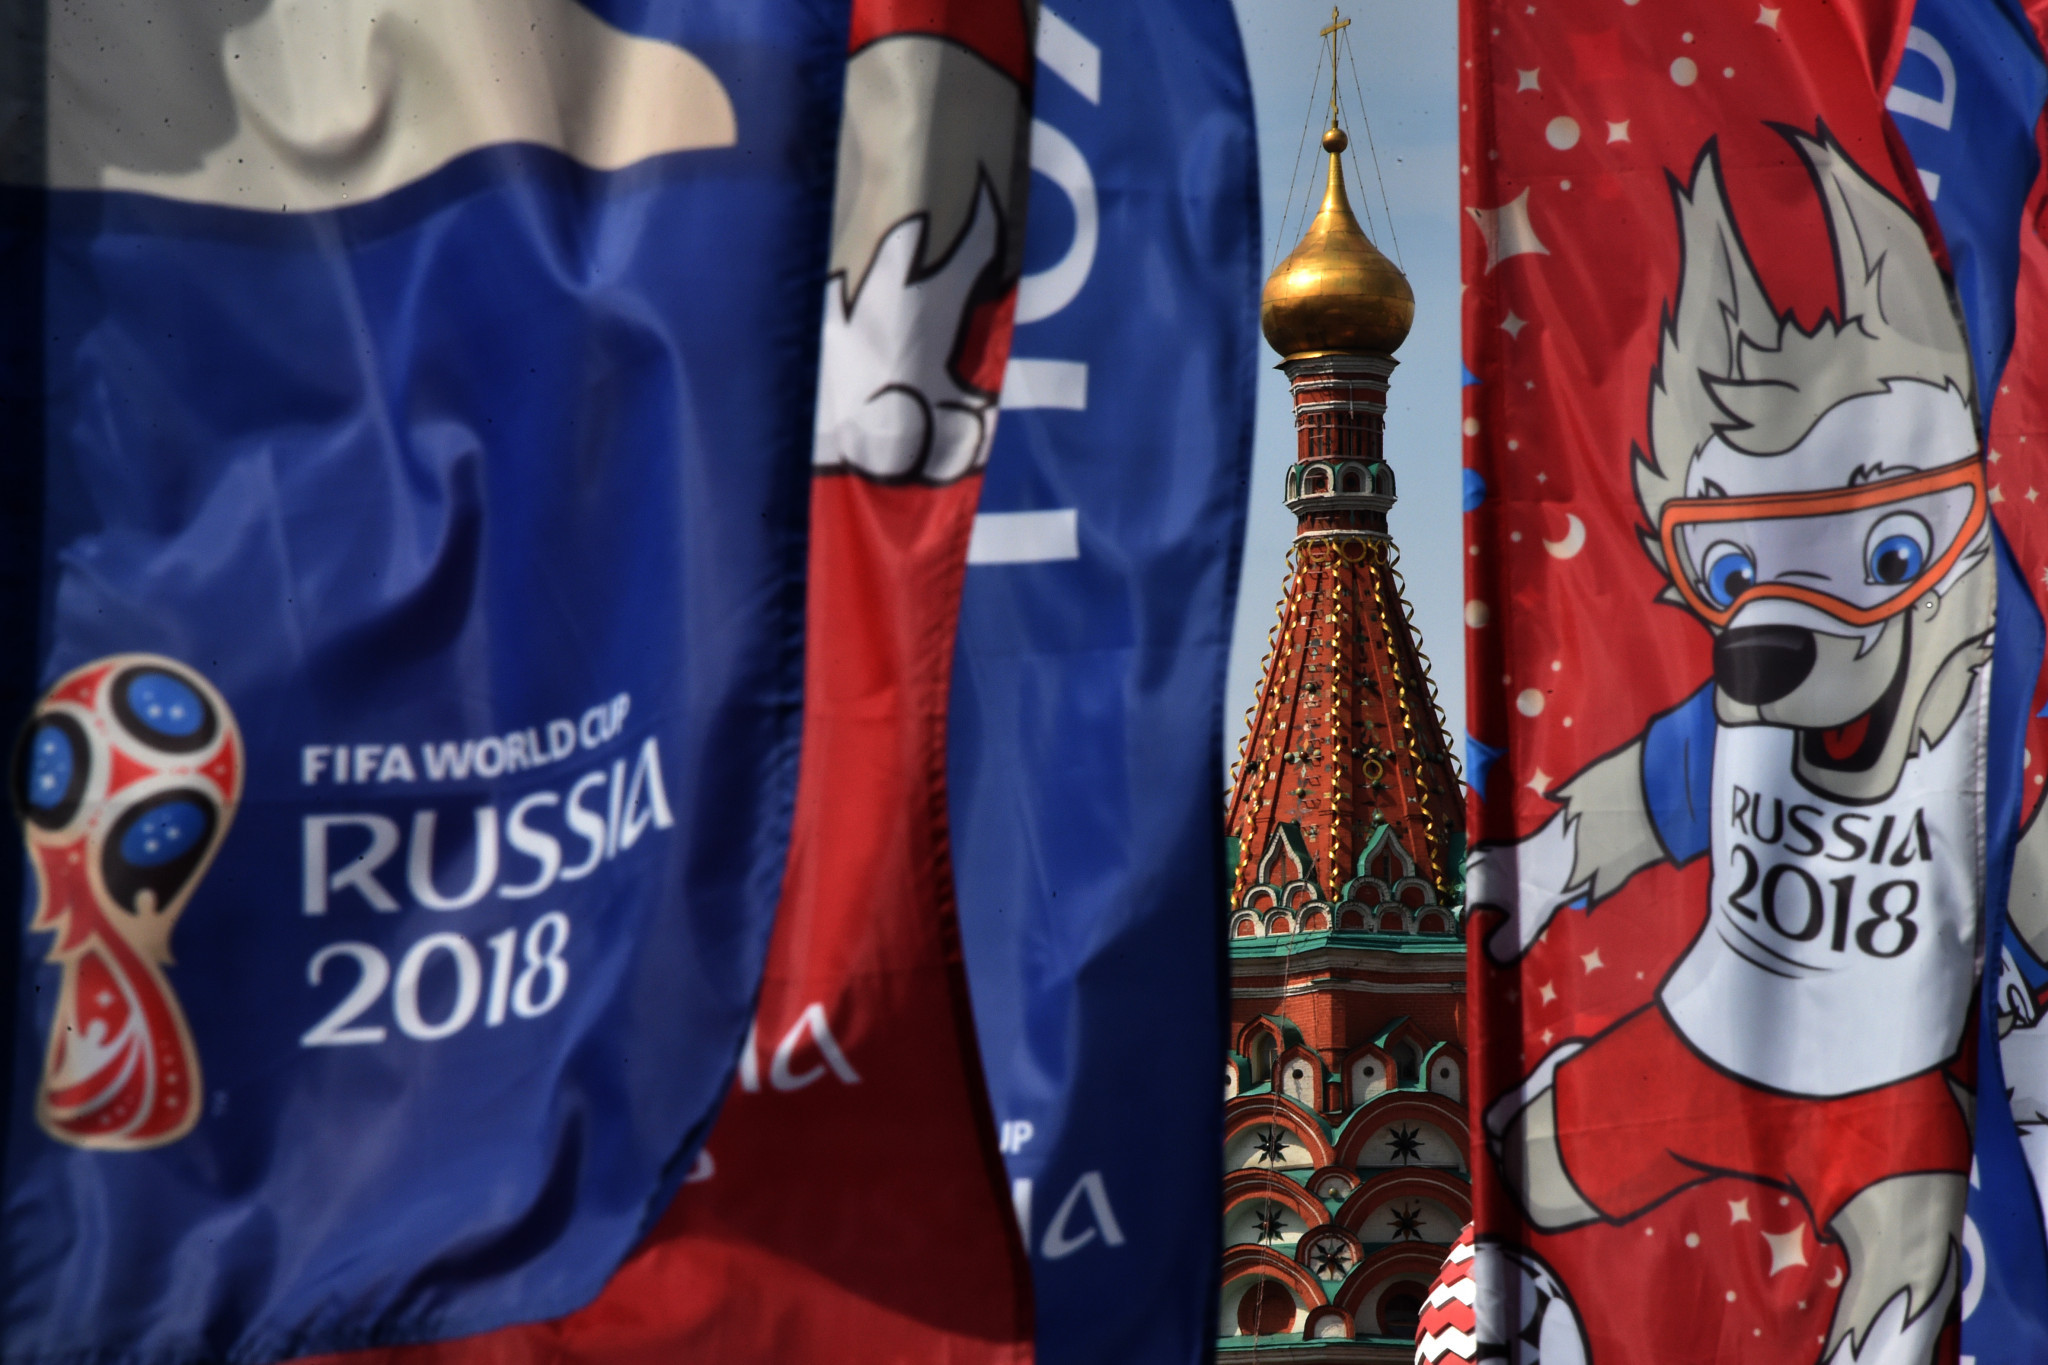 Russia and Qatar issue denials after US indictment alleges bribes paid for FIFA World Cups